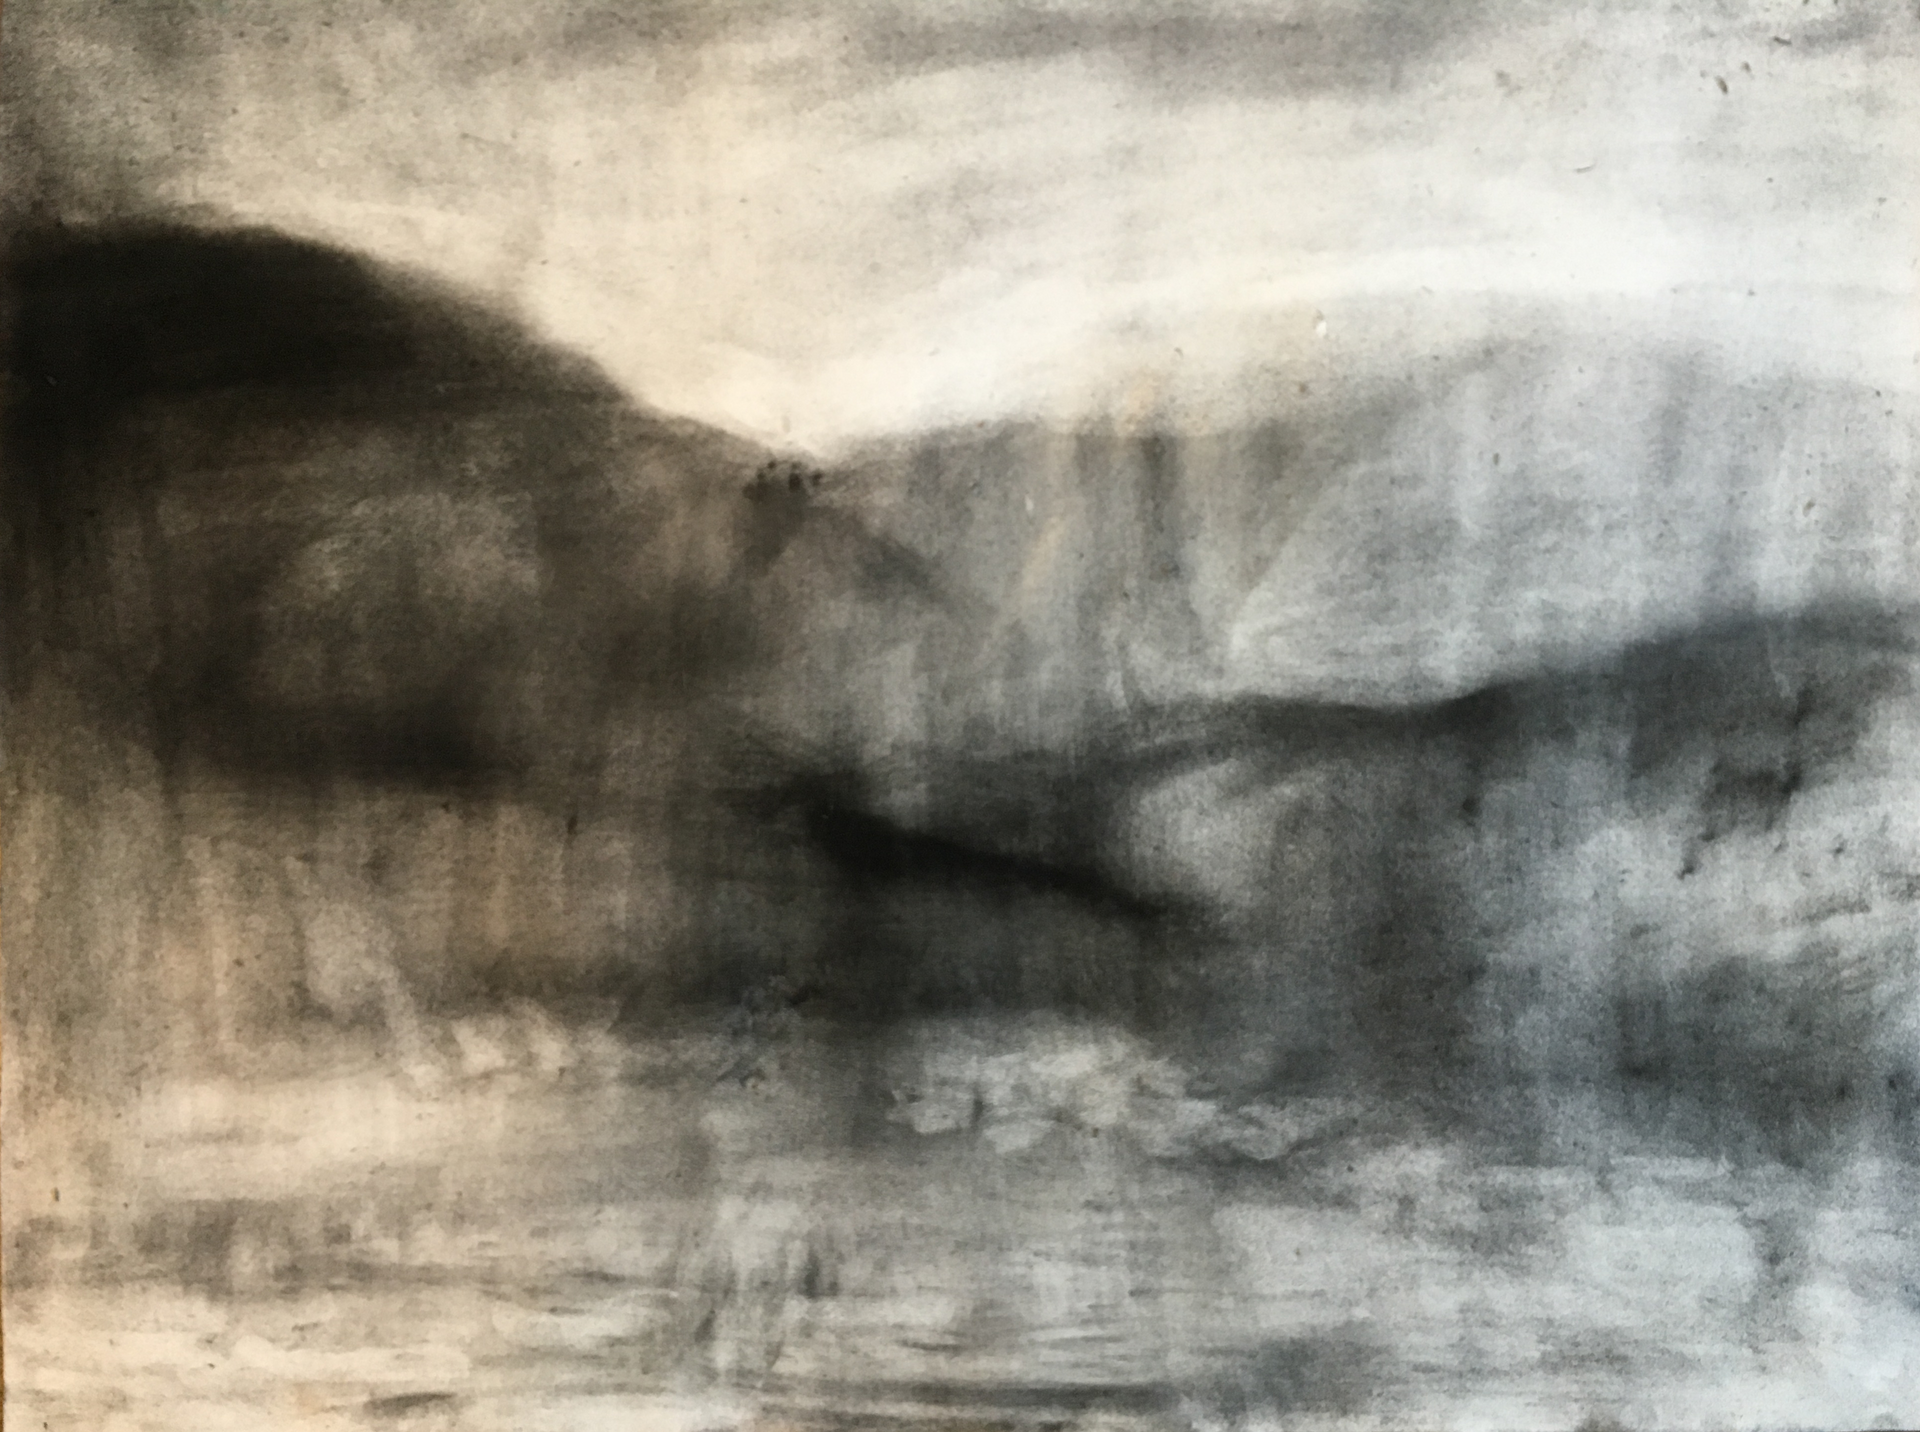 VALLEI 2019 Charcoal on cotton paper 50 x 64cm